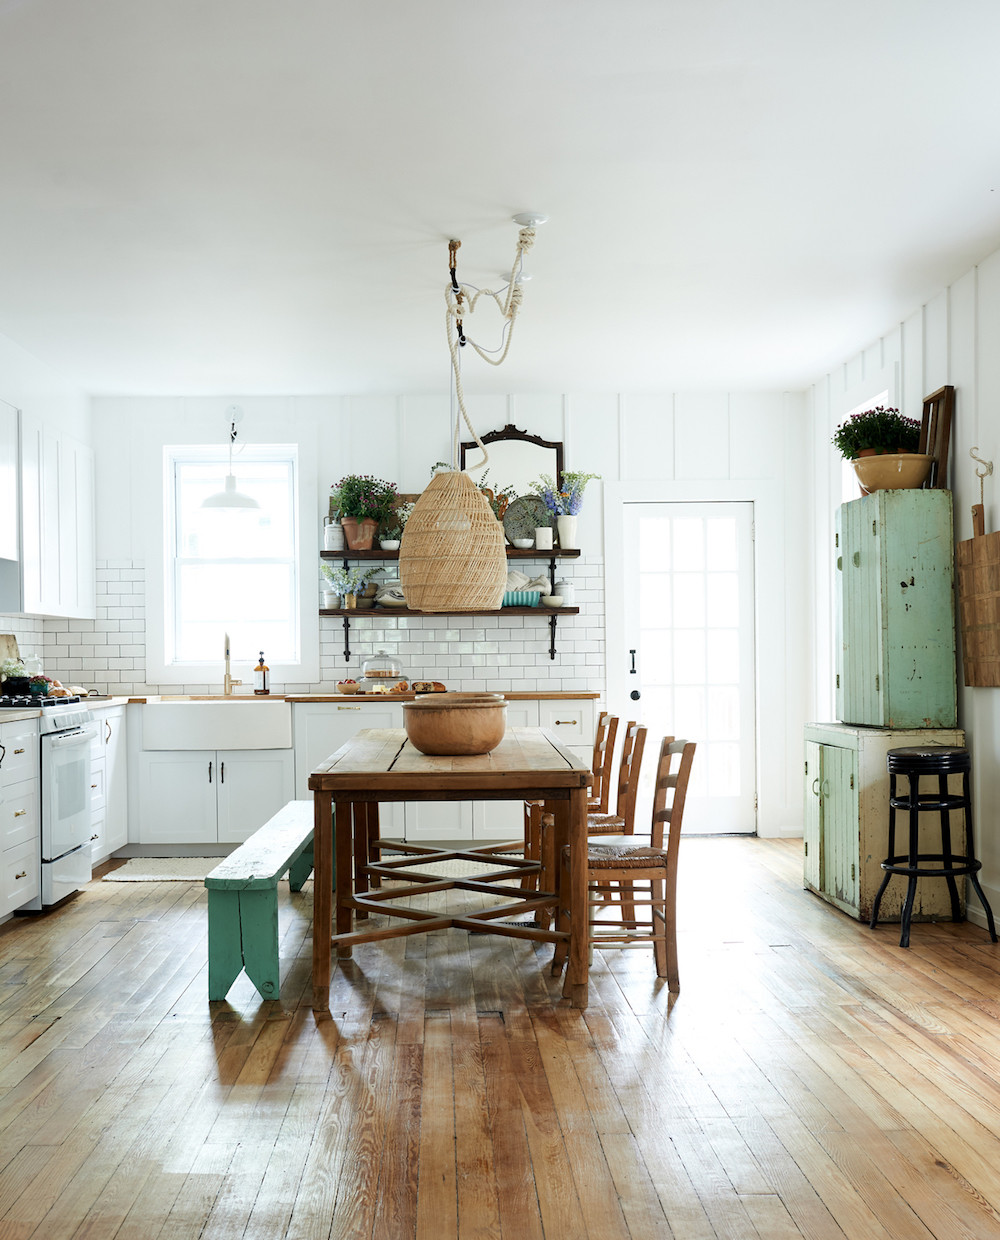 Hardwood Floor Repair Boston Of the Faraci Project source Guide Leanne ford In Kitchen